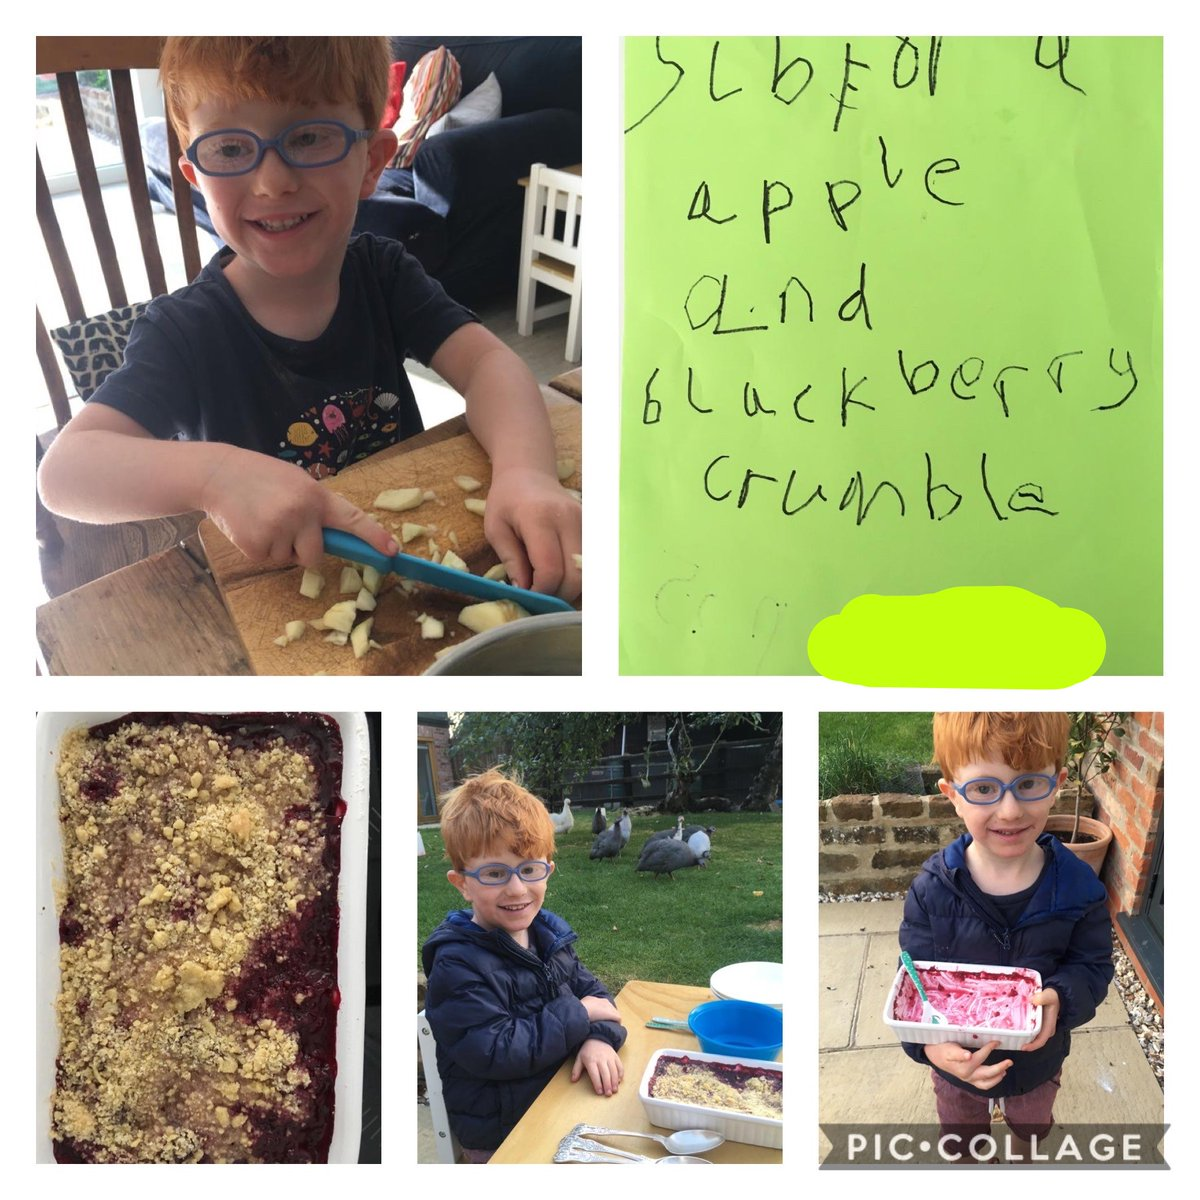 Some great work on our home challenge to get creative with apples from our school orchard.  #appleday #BeYouBeSibford #apples #cookingathome https://t.co/JafJC9sydq https://t.co/P5QNsy6cYg